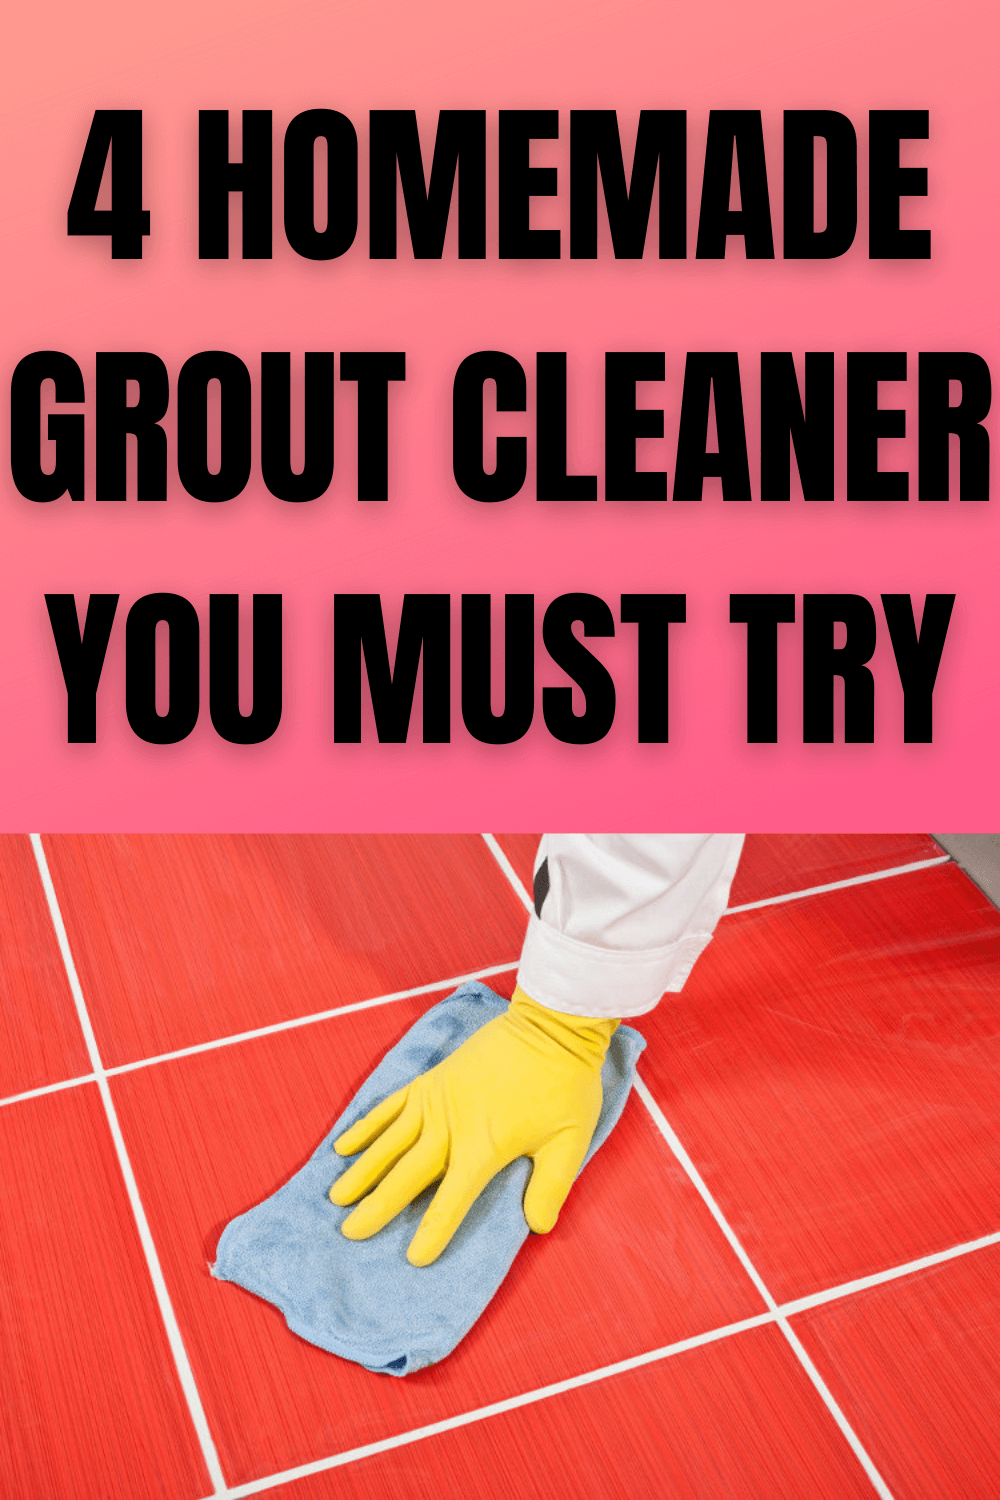 4 HOMEMADE GROUT CLEANER YOU MUST TRY